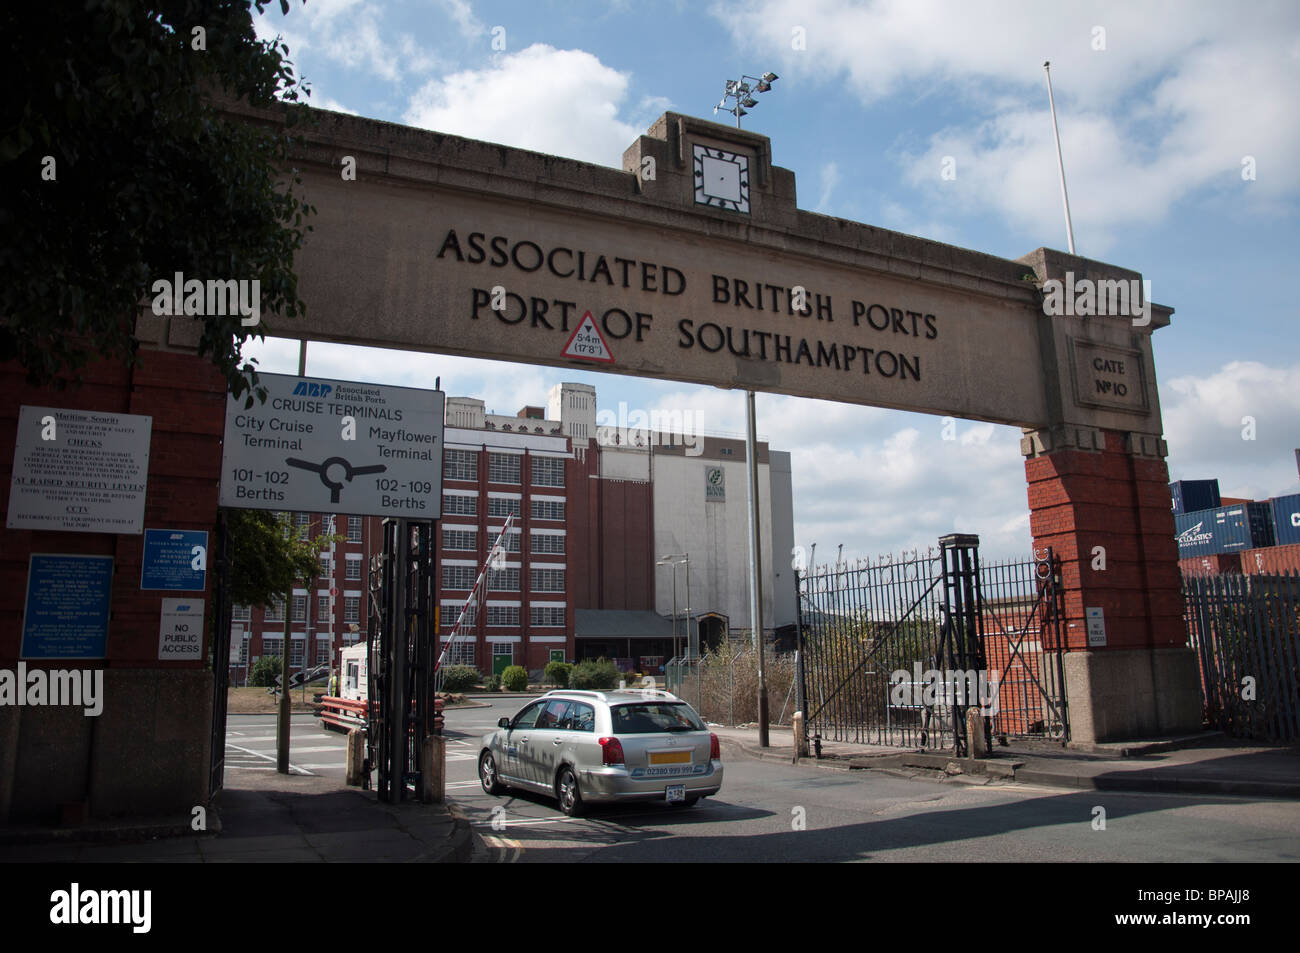 The Entrance to the Port of Southampton Docks in Southampton, England. - Stock Image